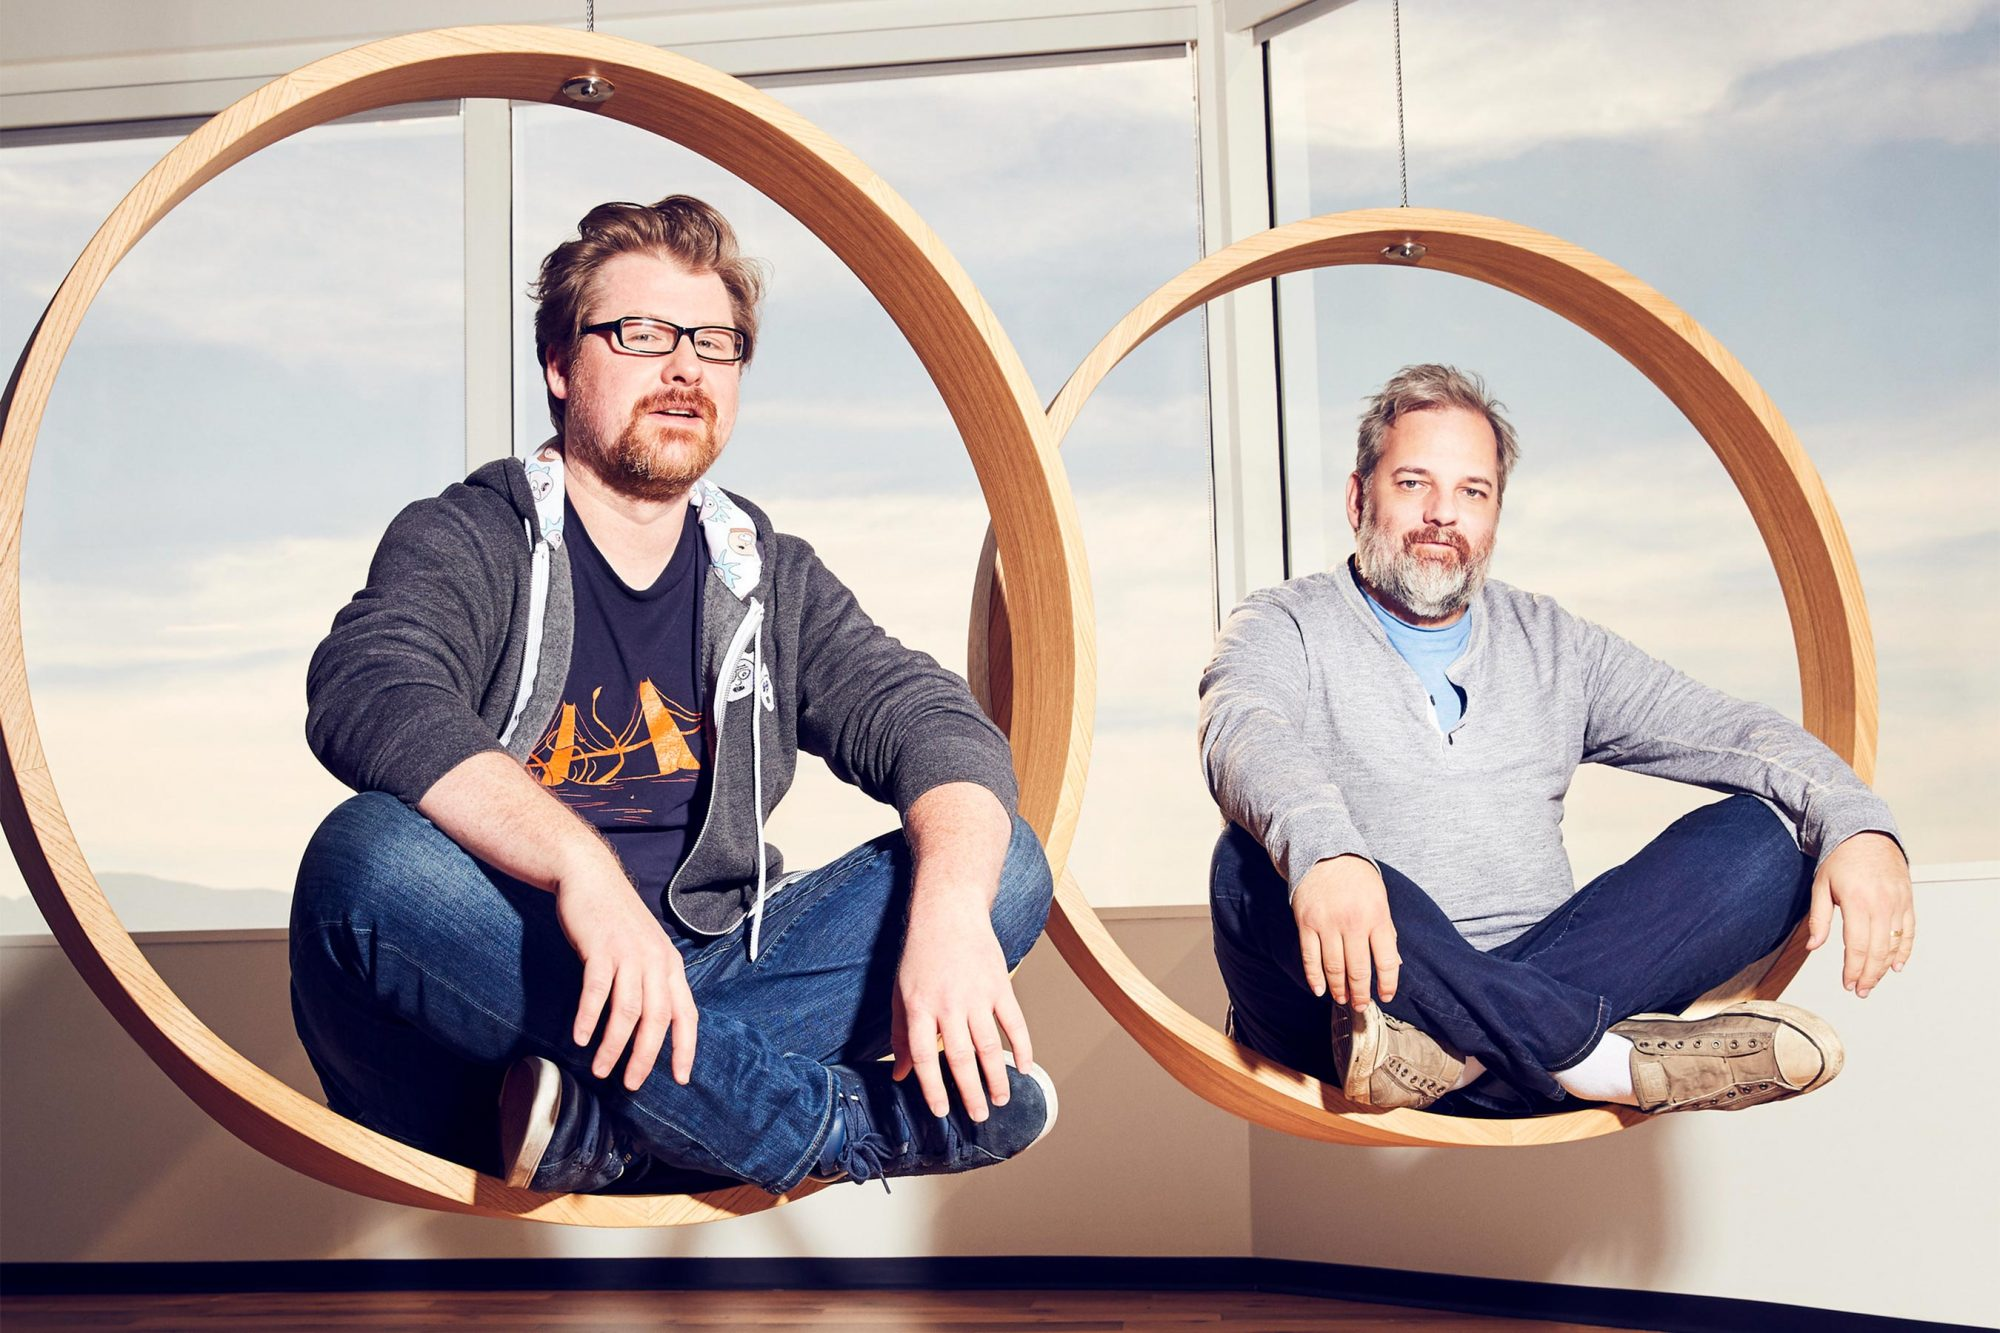 Rick and Morty creators, Justin Roiland and Dan Harmon CR: Adult Swim